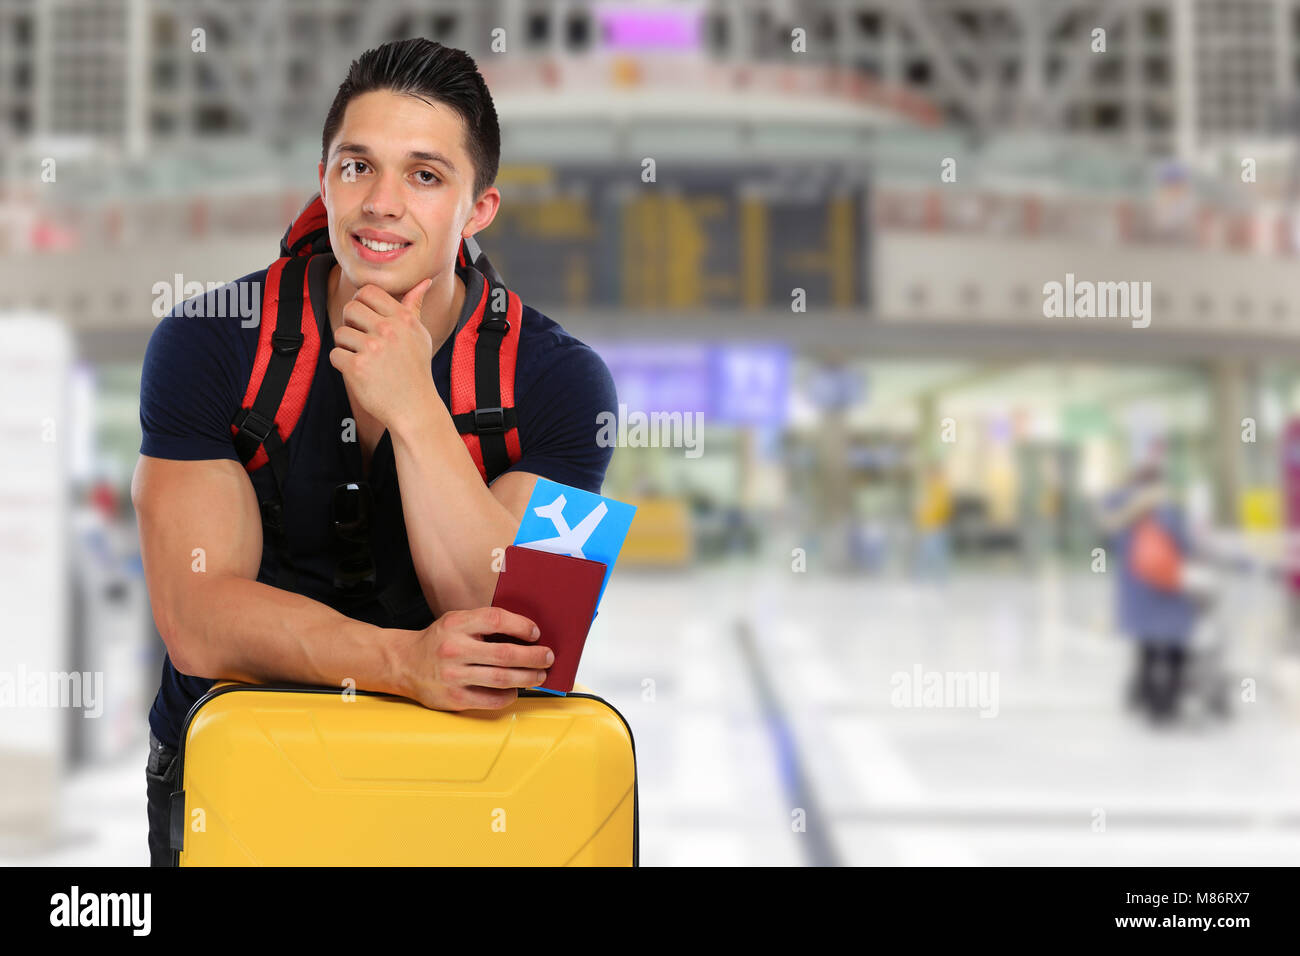 Young man flight ticket flying airport travel traveling luggage vacation holidays baggage - Stock Image